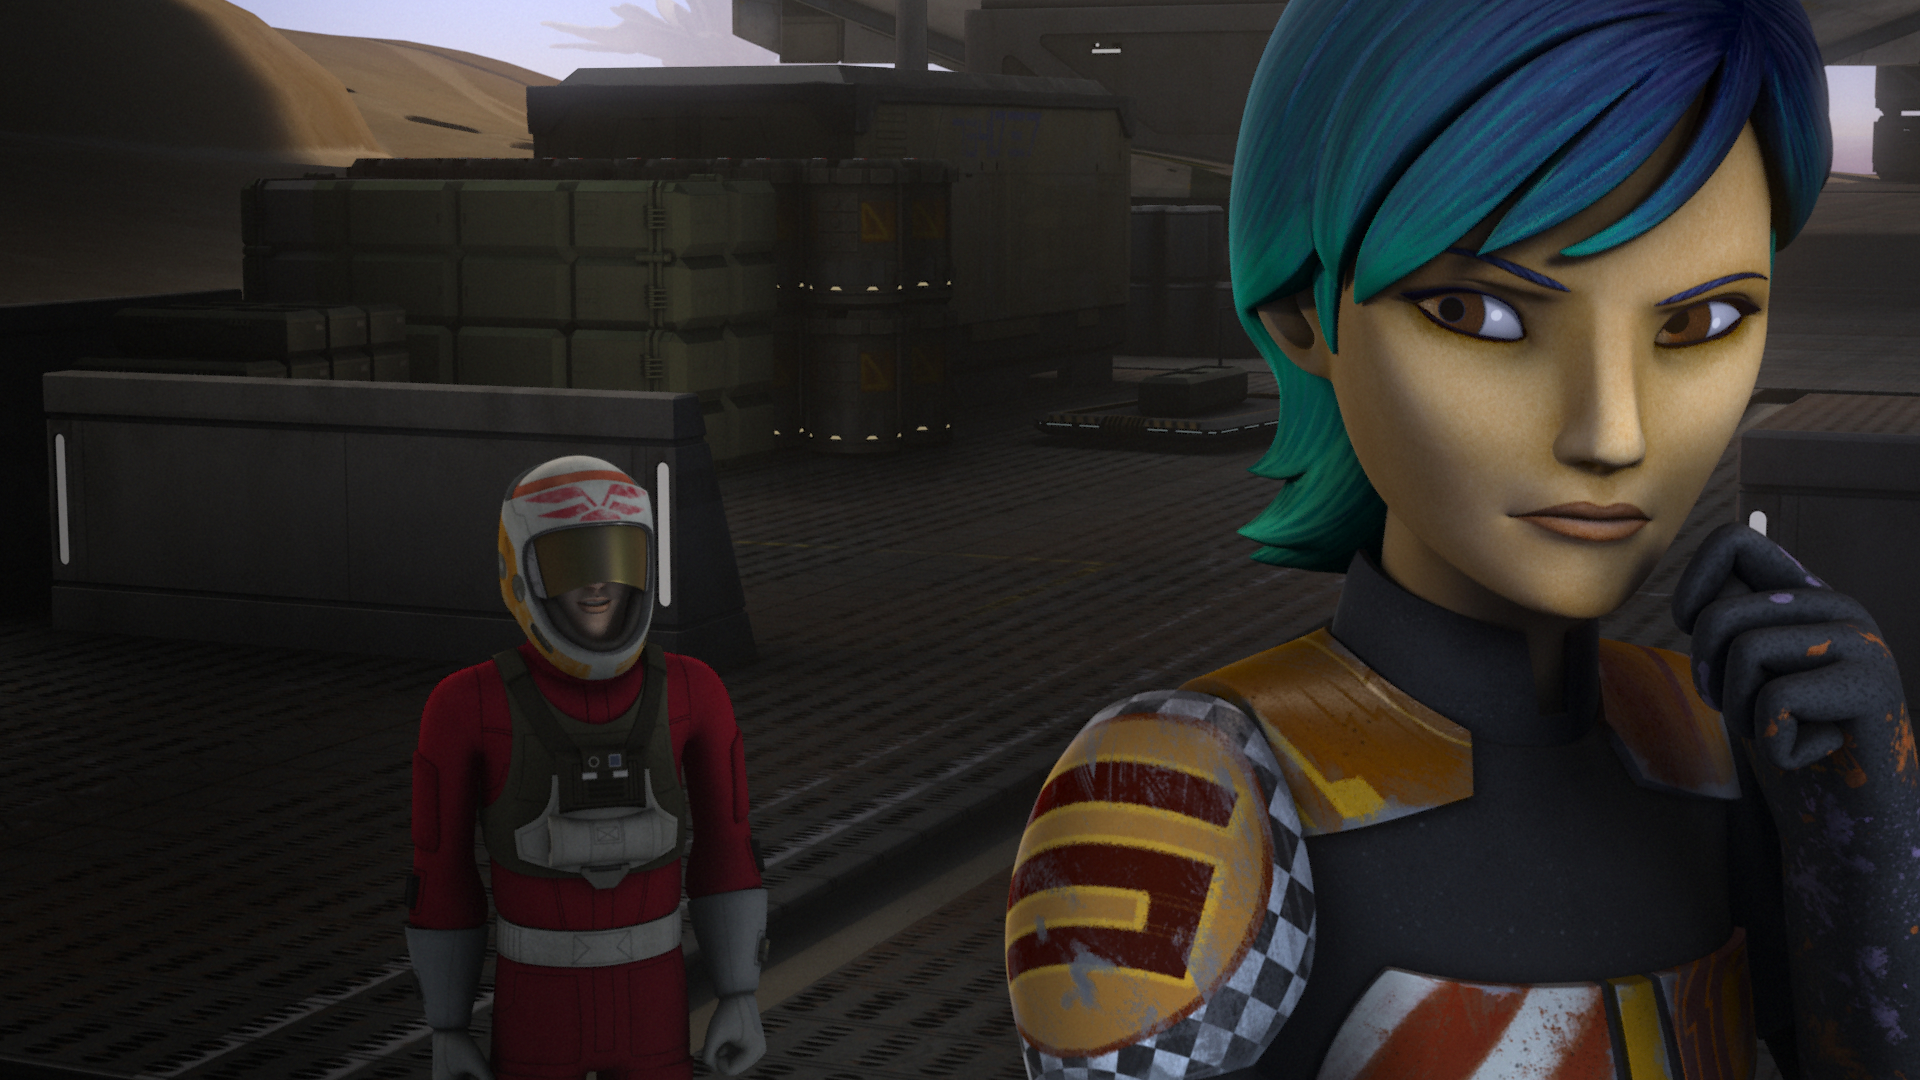 Star Wars Rebels The Mystery Of Chopper Base New Clip And Images Sci Fi Movie Page